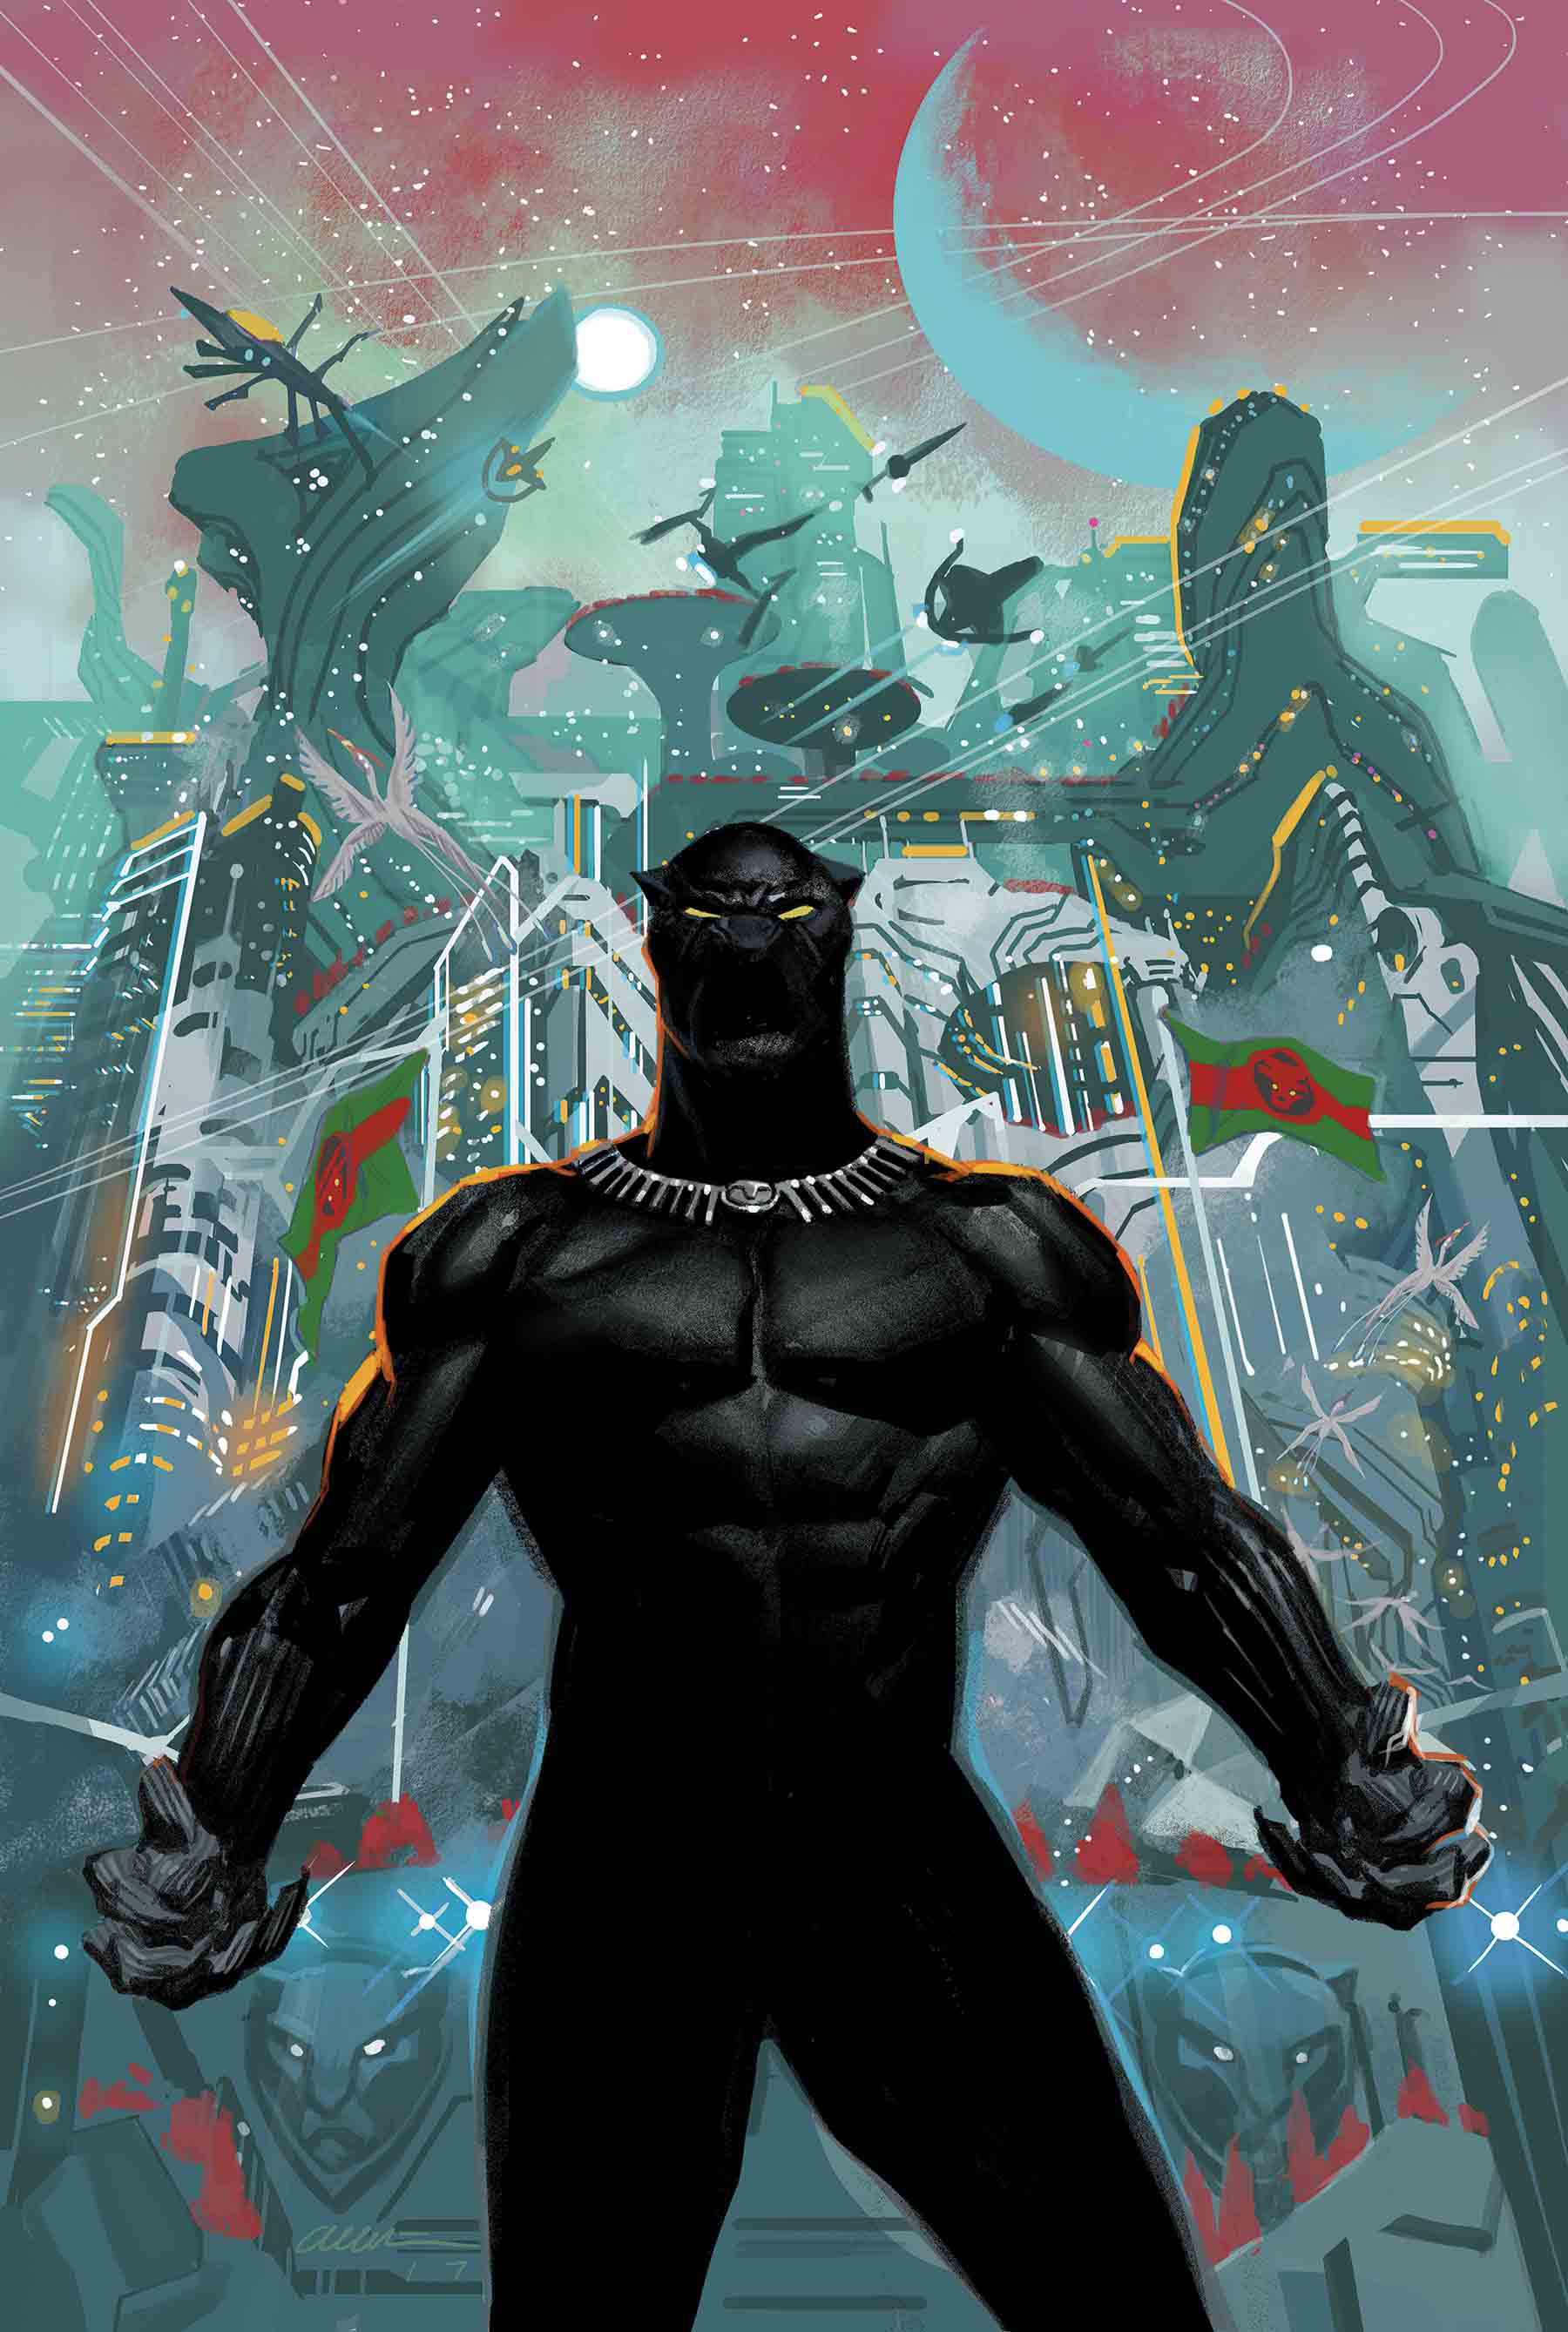 BLACK PANTHER #1 BY ACUNA POSTER